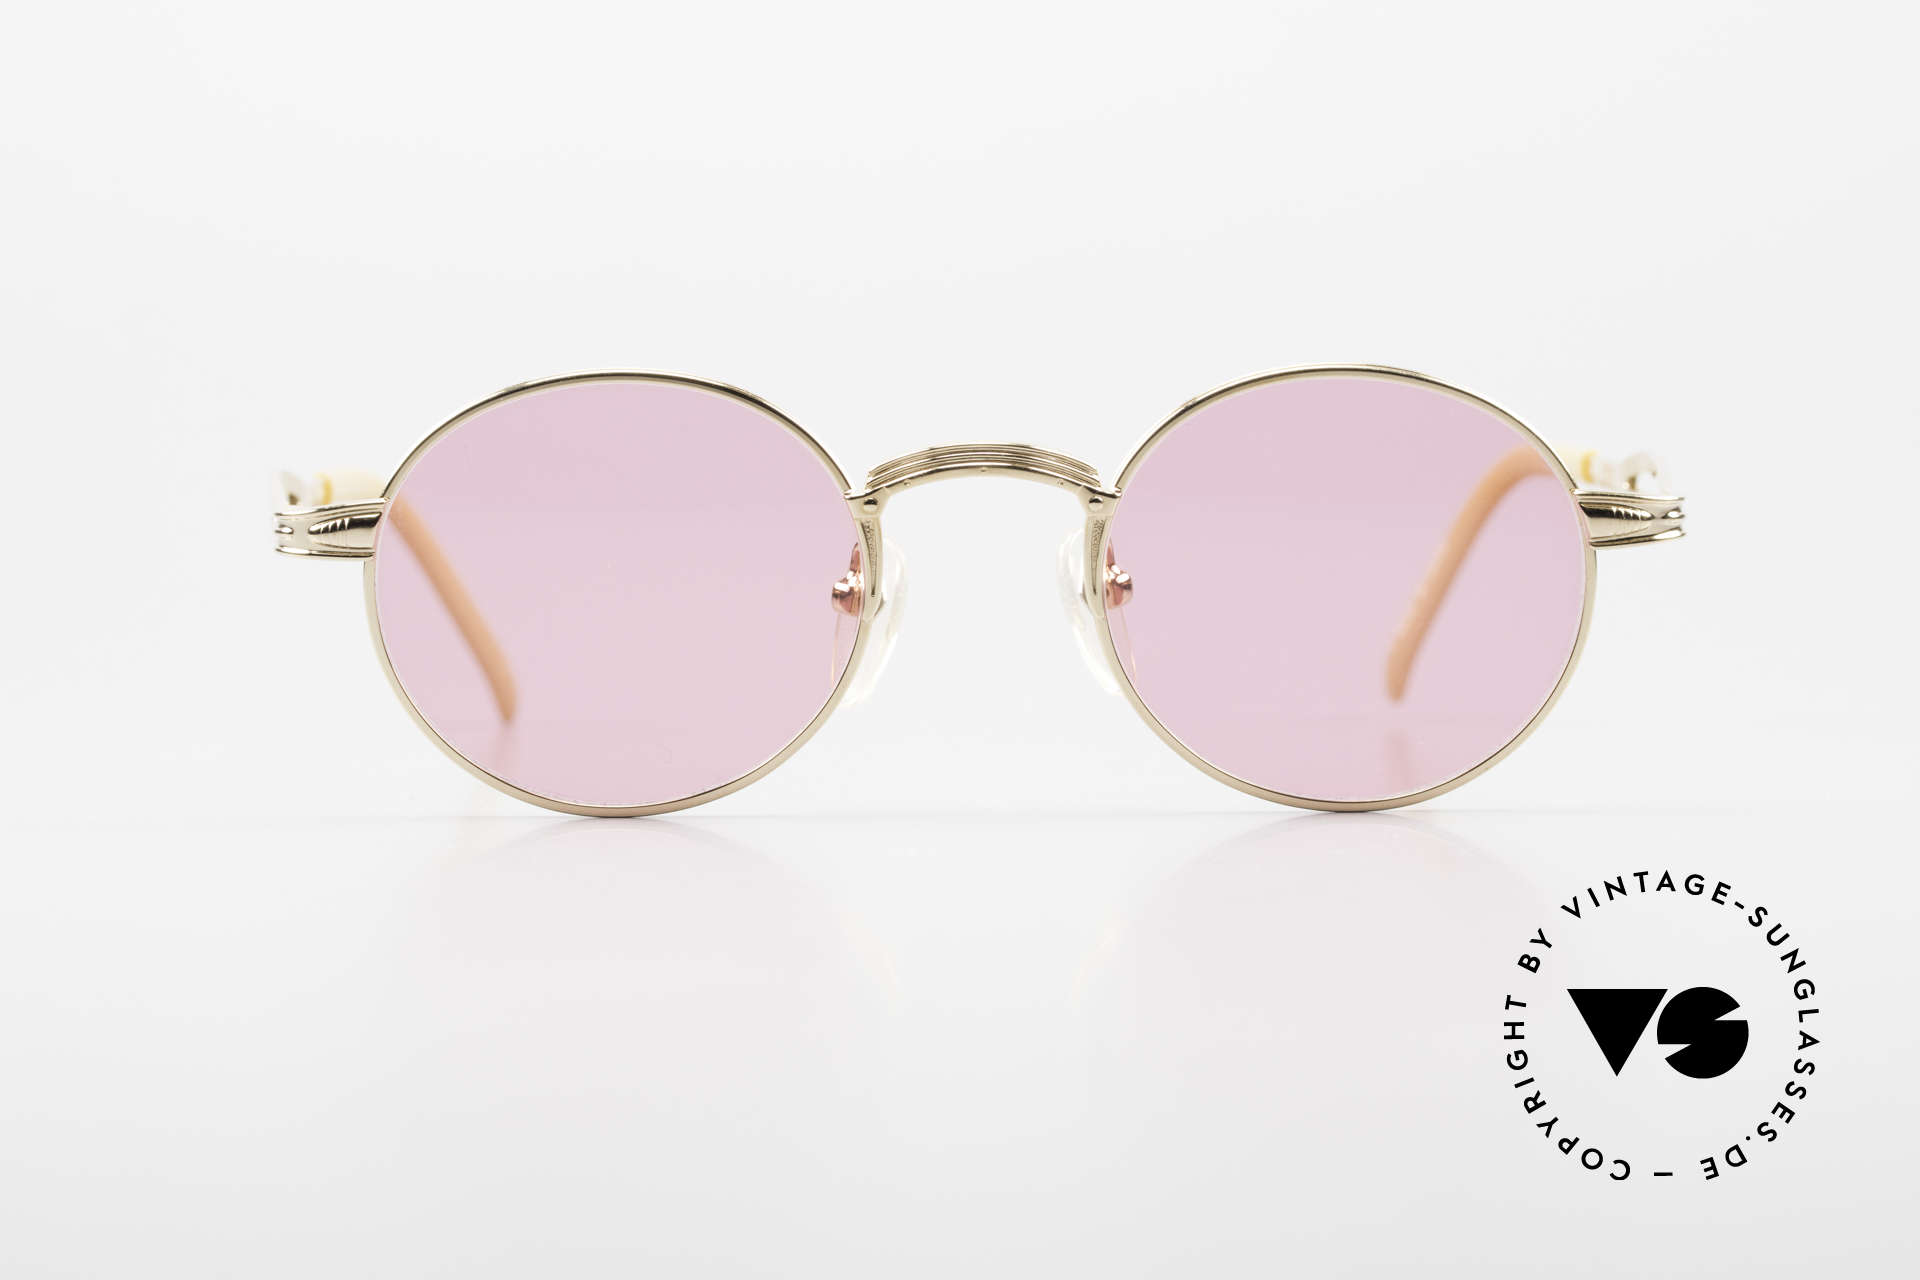 Jean Paul Gaultier 55-7107 Pink Round Glasses Gold Plated, GP: gold-plated metal frame; in S to M size 44/20, Made for Men and Women